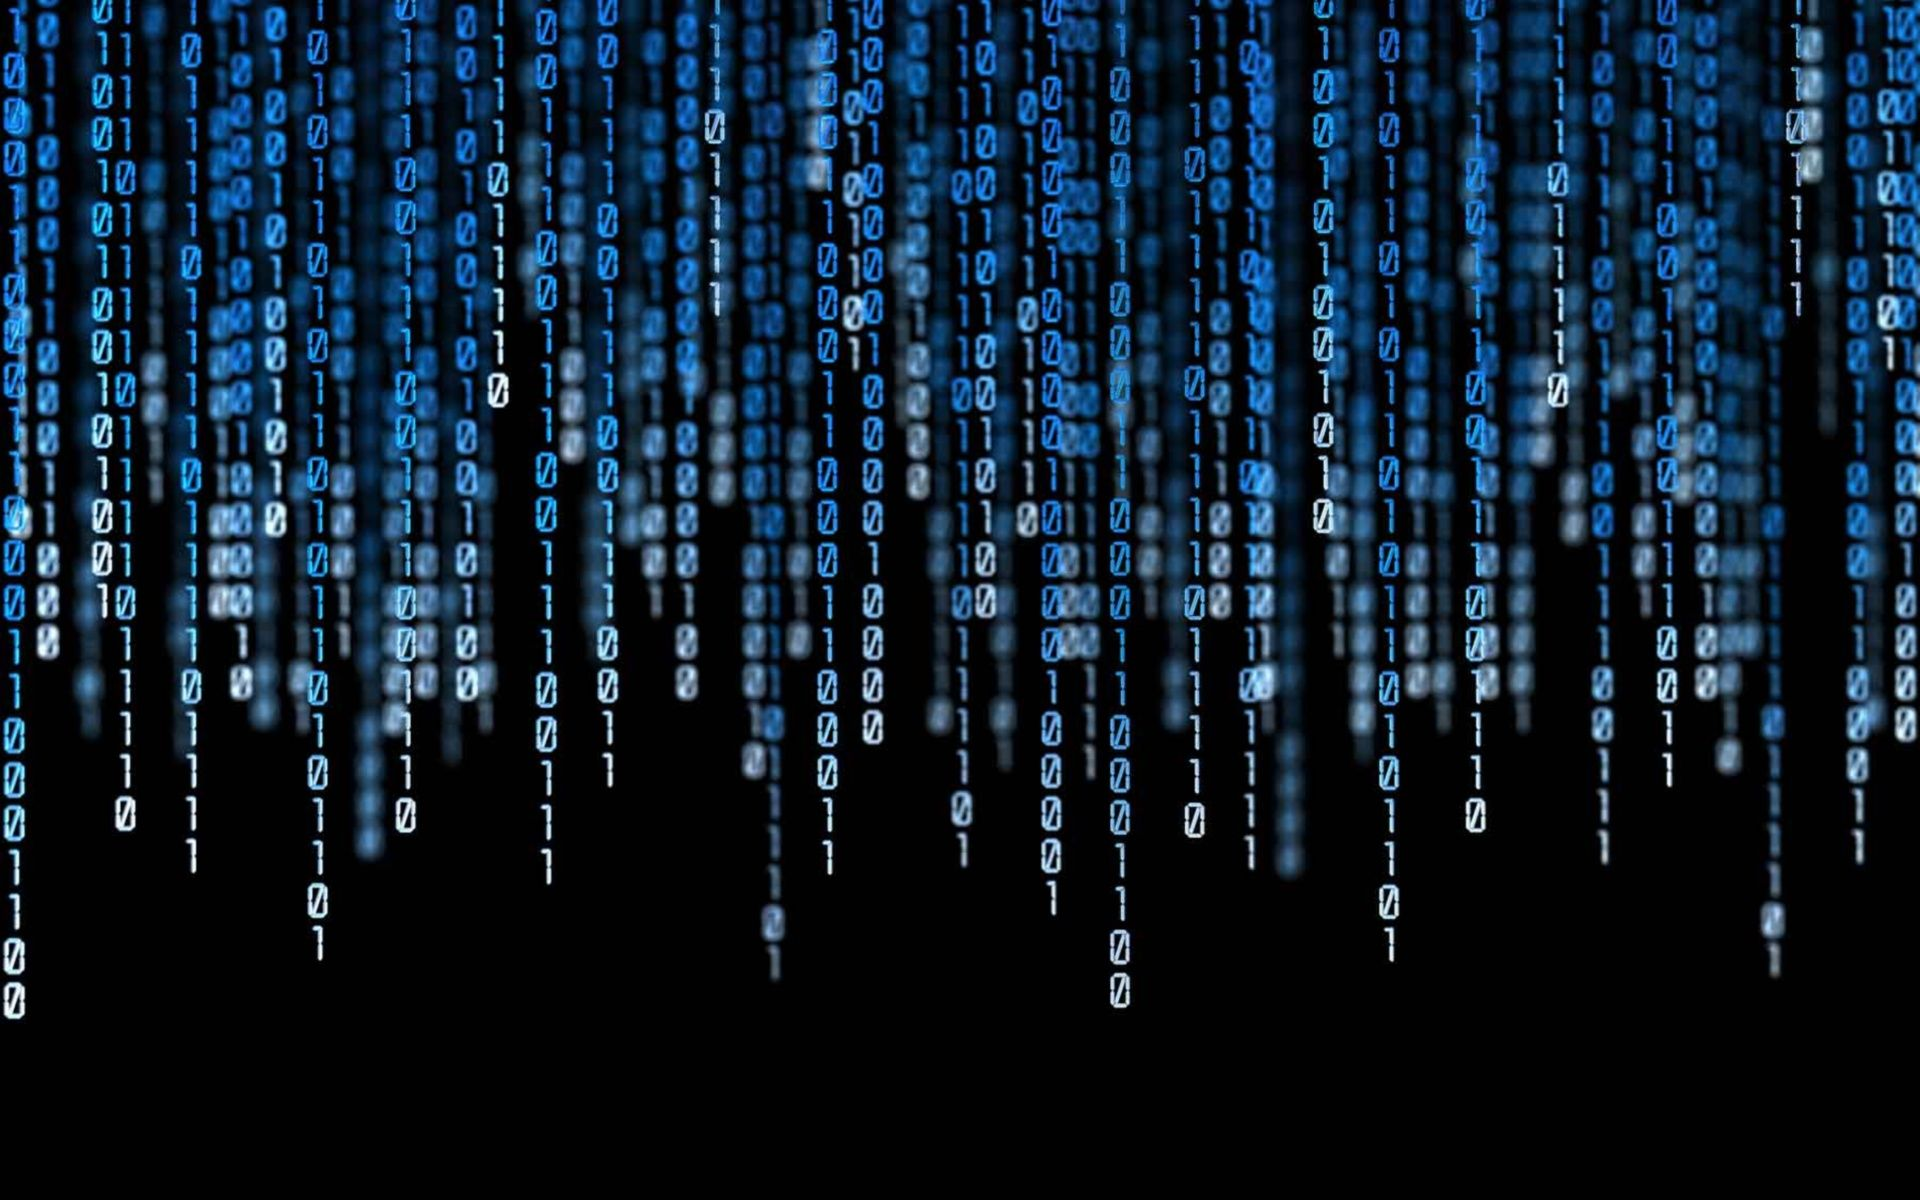 Live Binary Code Wallpapers - Top Free Live Binary Code Backgrounds